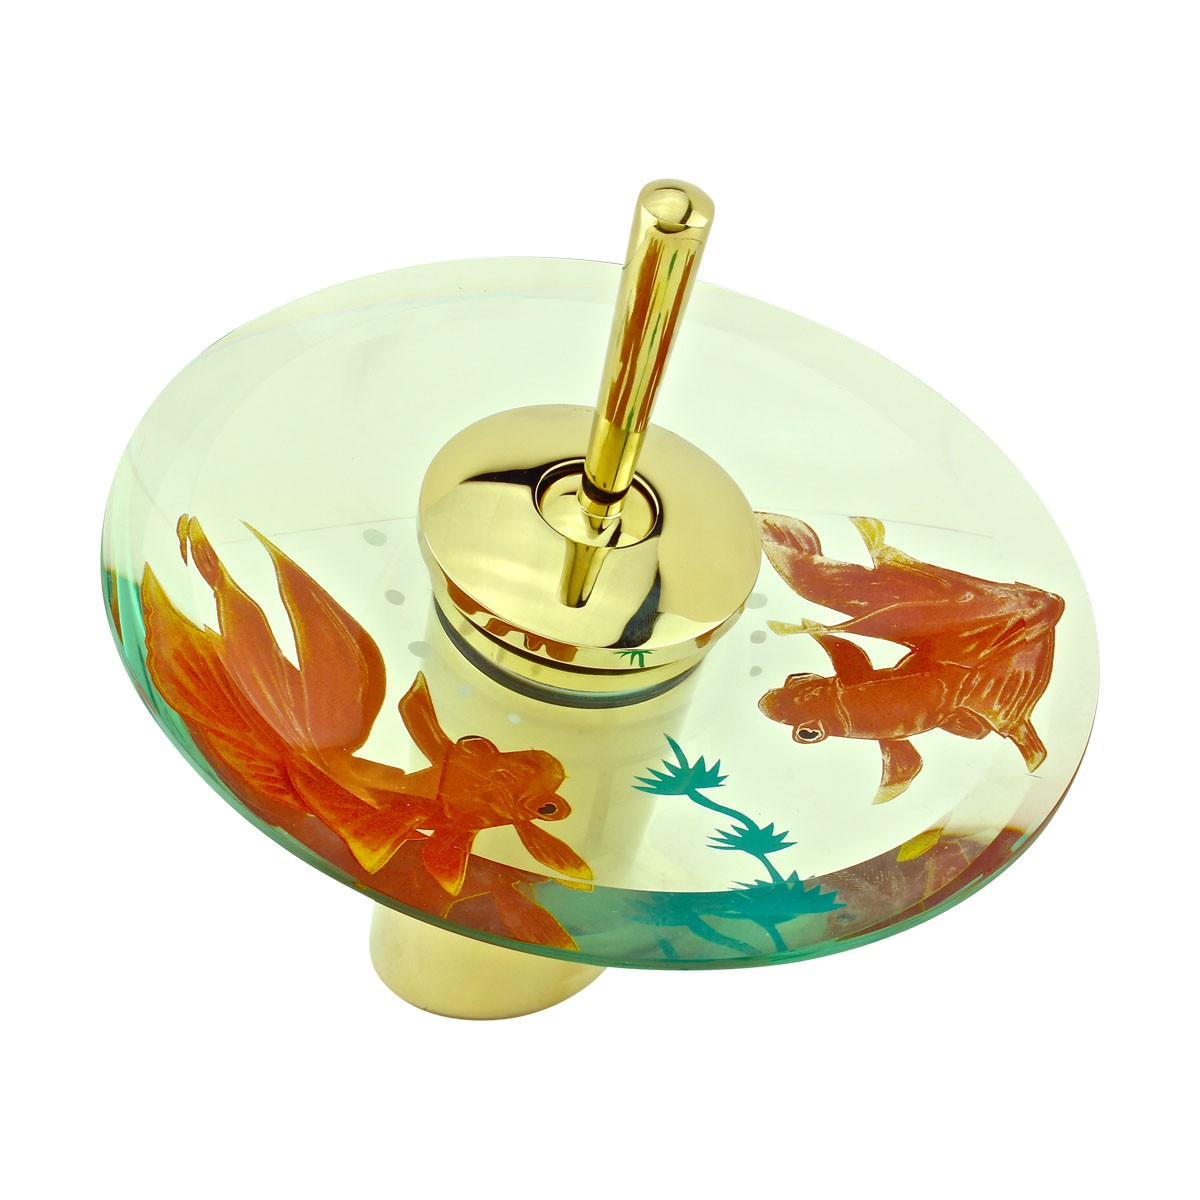 Waterfall Faucet Cast Brass PVD 7 H Koi Fish Glass Glass plate Waterfall Sink Faucet Waterfall Bathroom Faucets Glass Disk Faucet